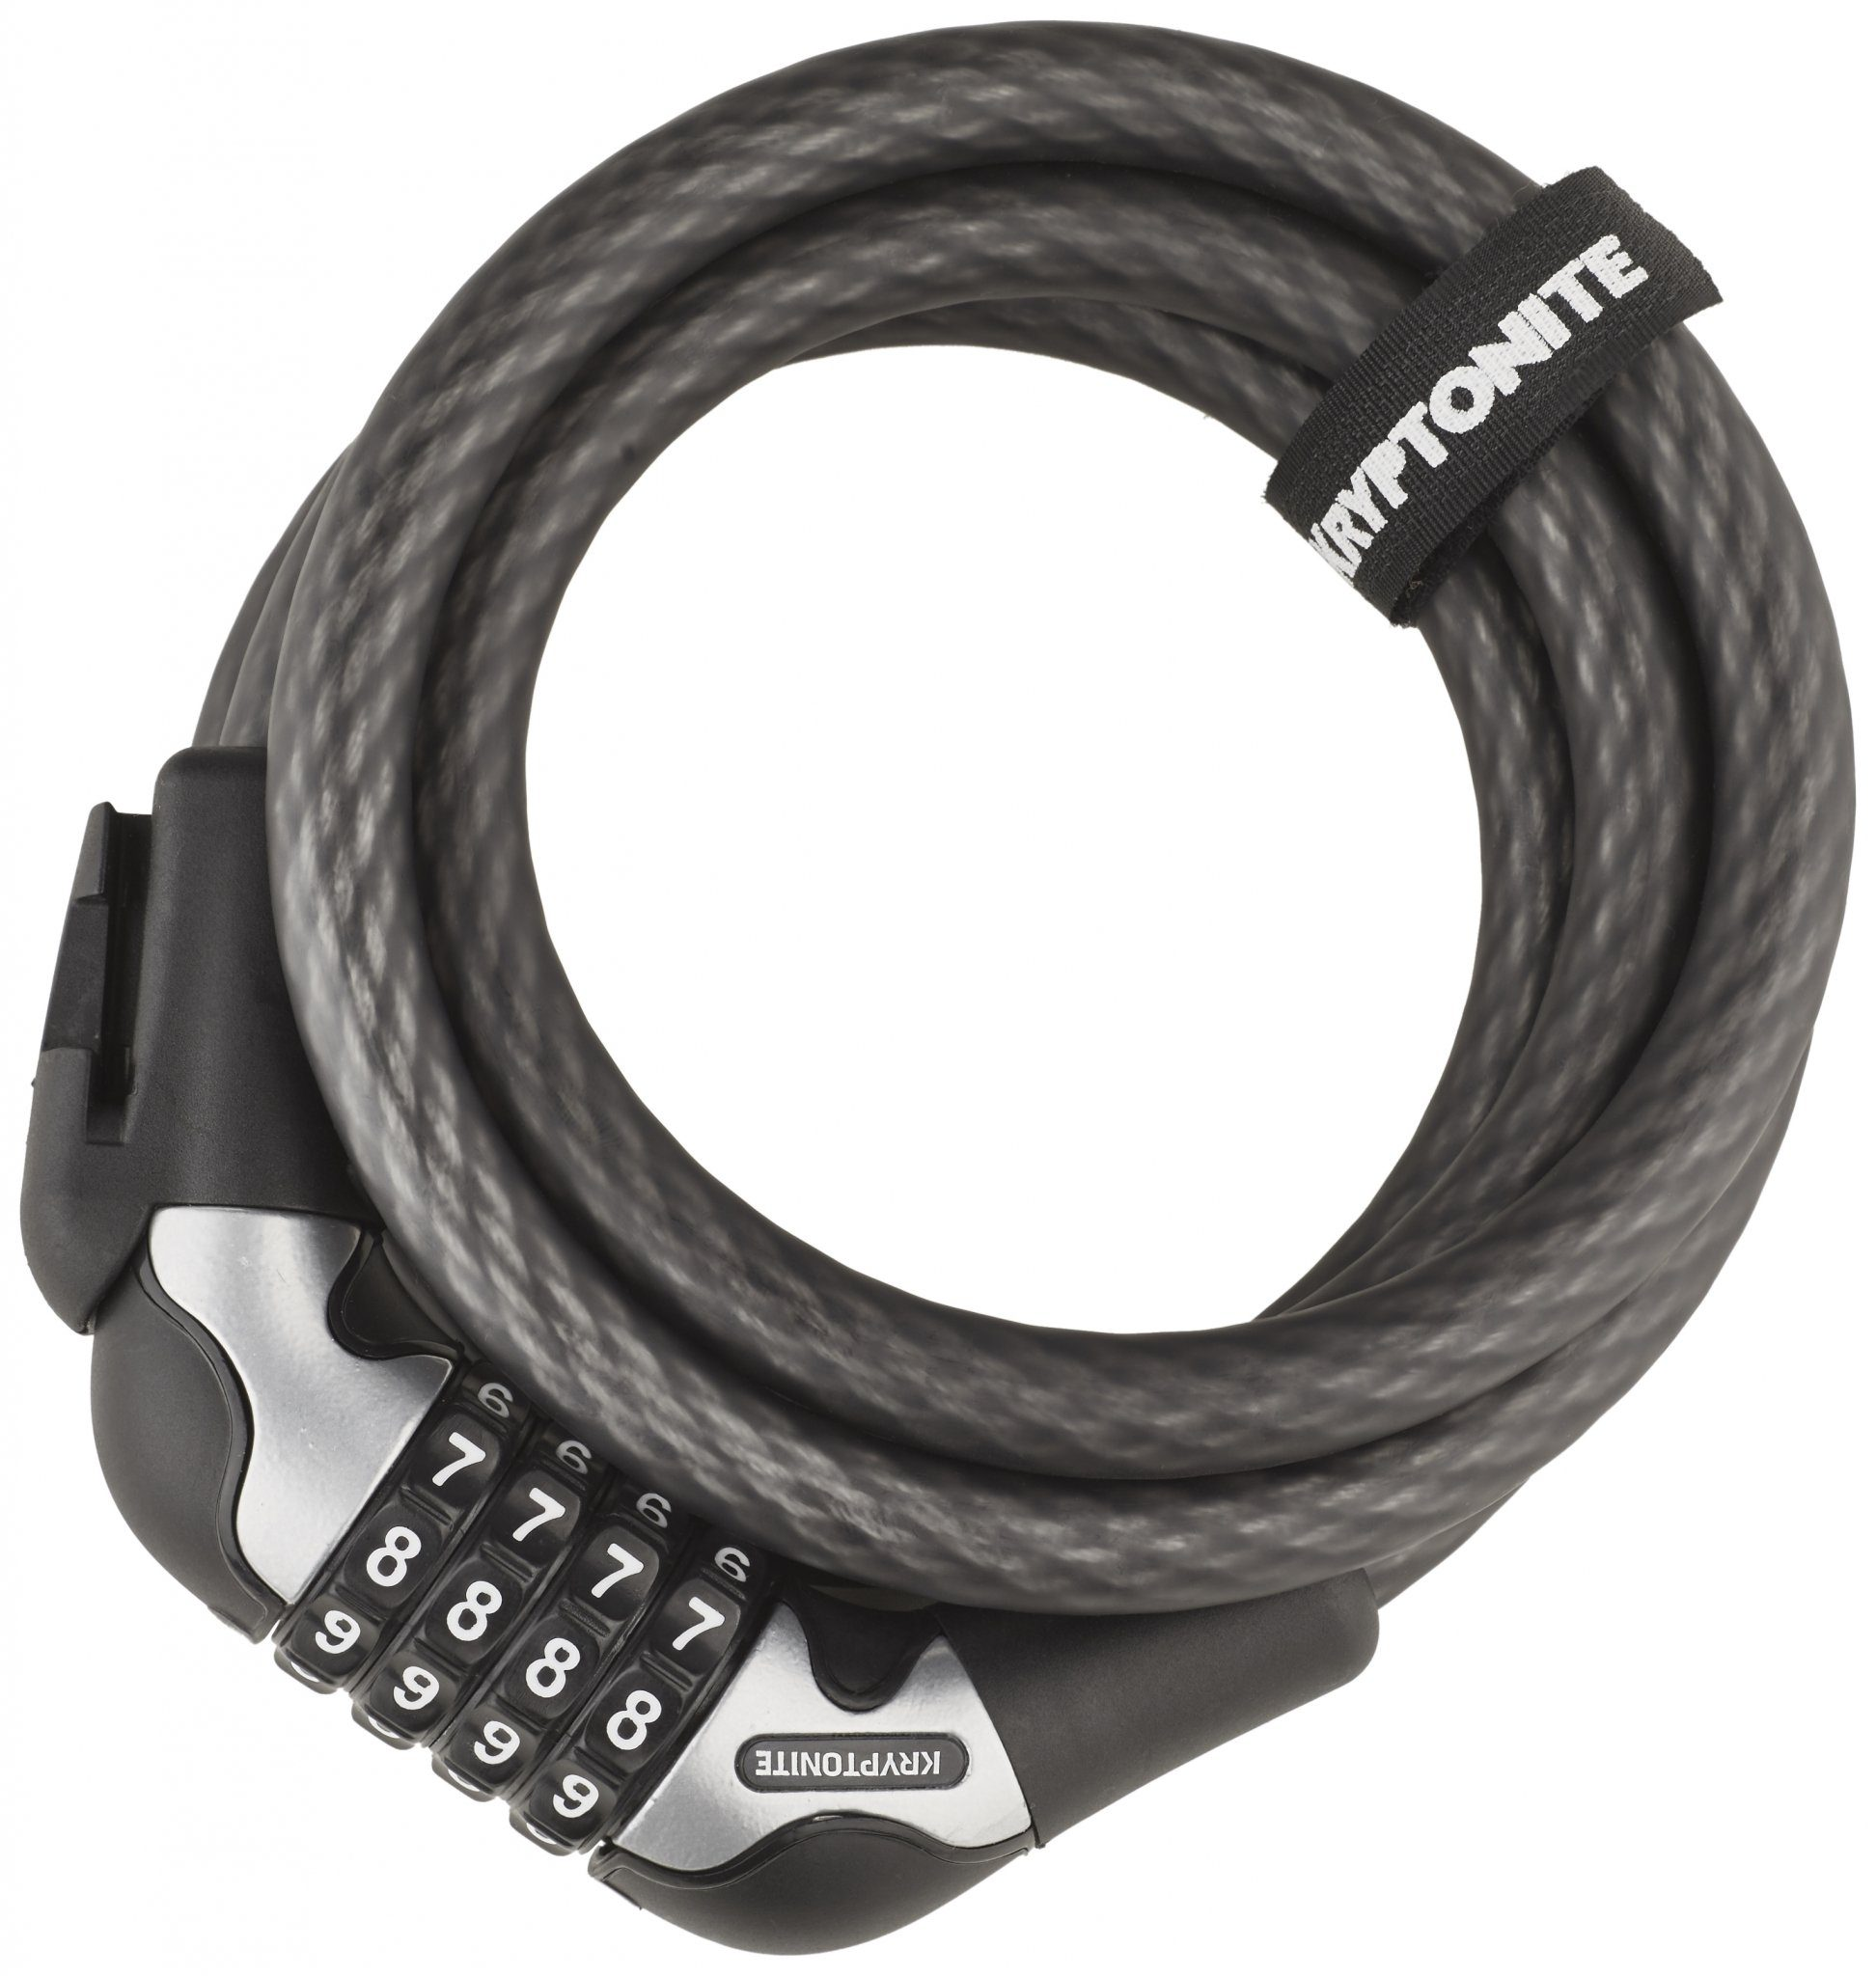 Kryptonite Fahrradschloss »Kryptoflex 1218 Combo Cable«